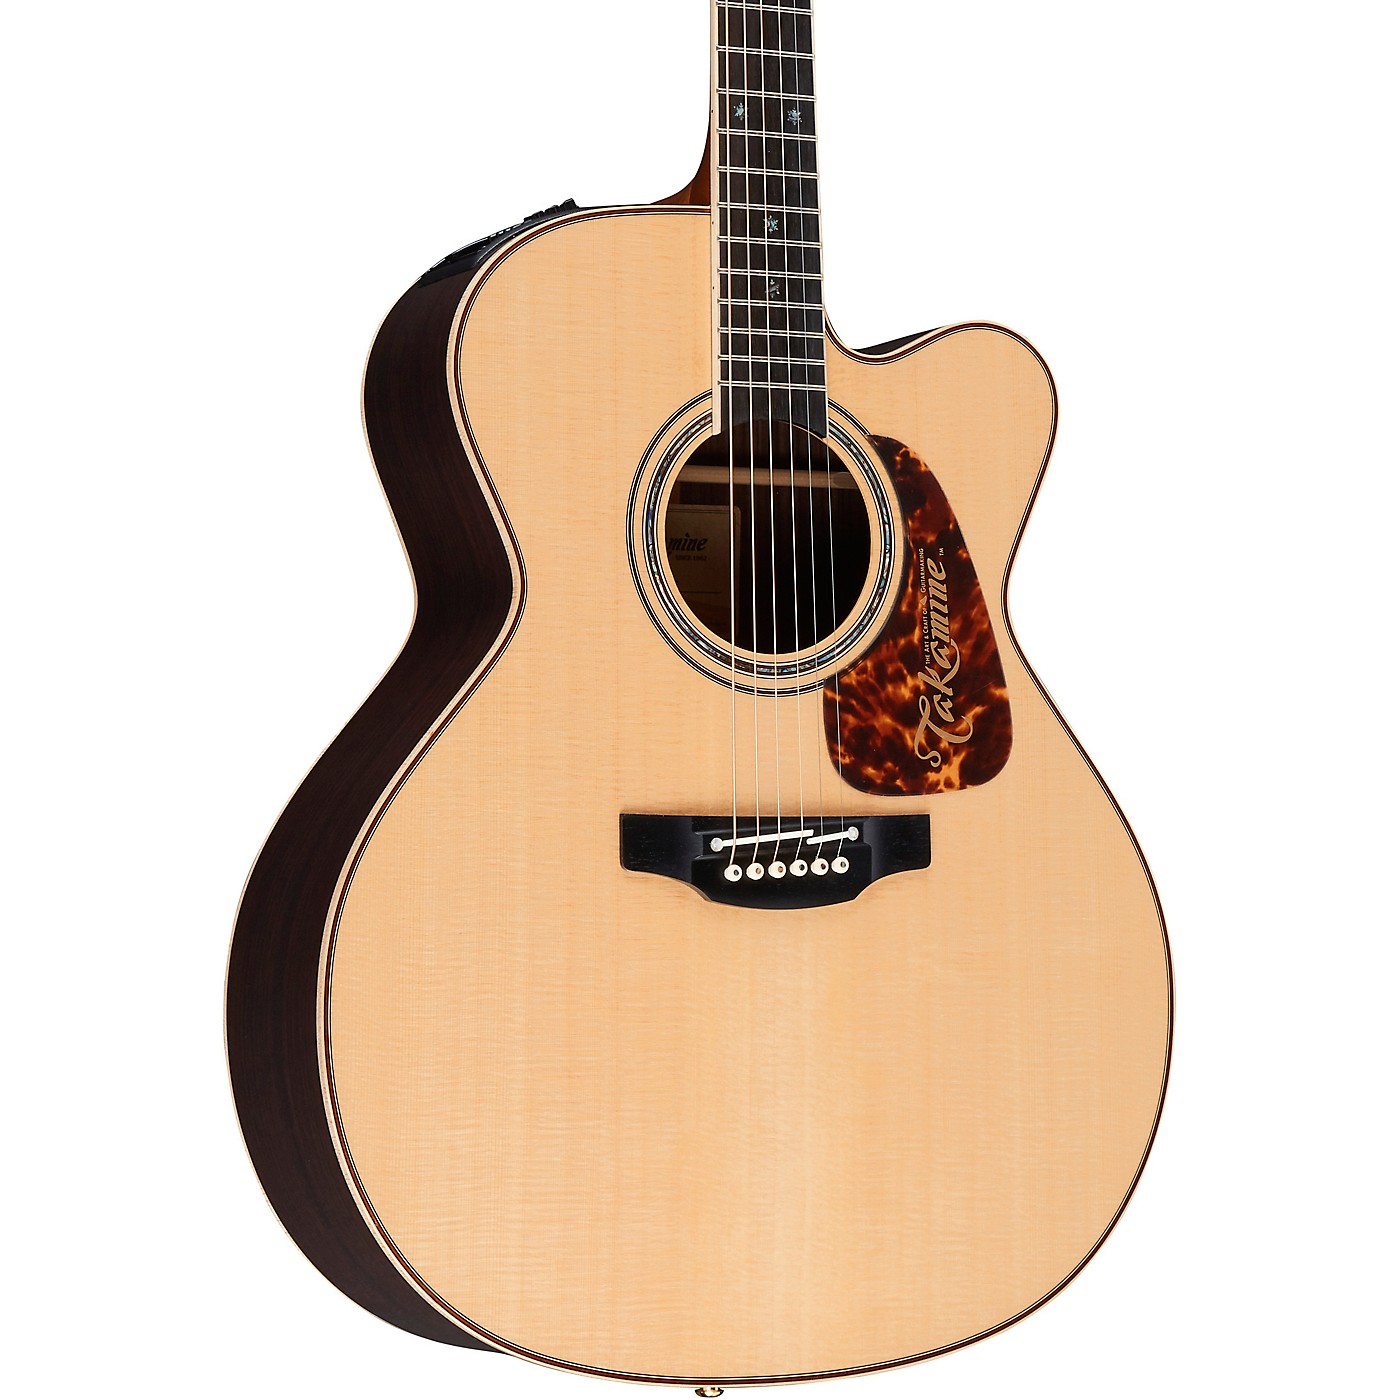 Takamine Pro Series 7 Jumbo Cutaway Acoustic-Electric Guitar thumbnail